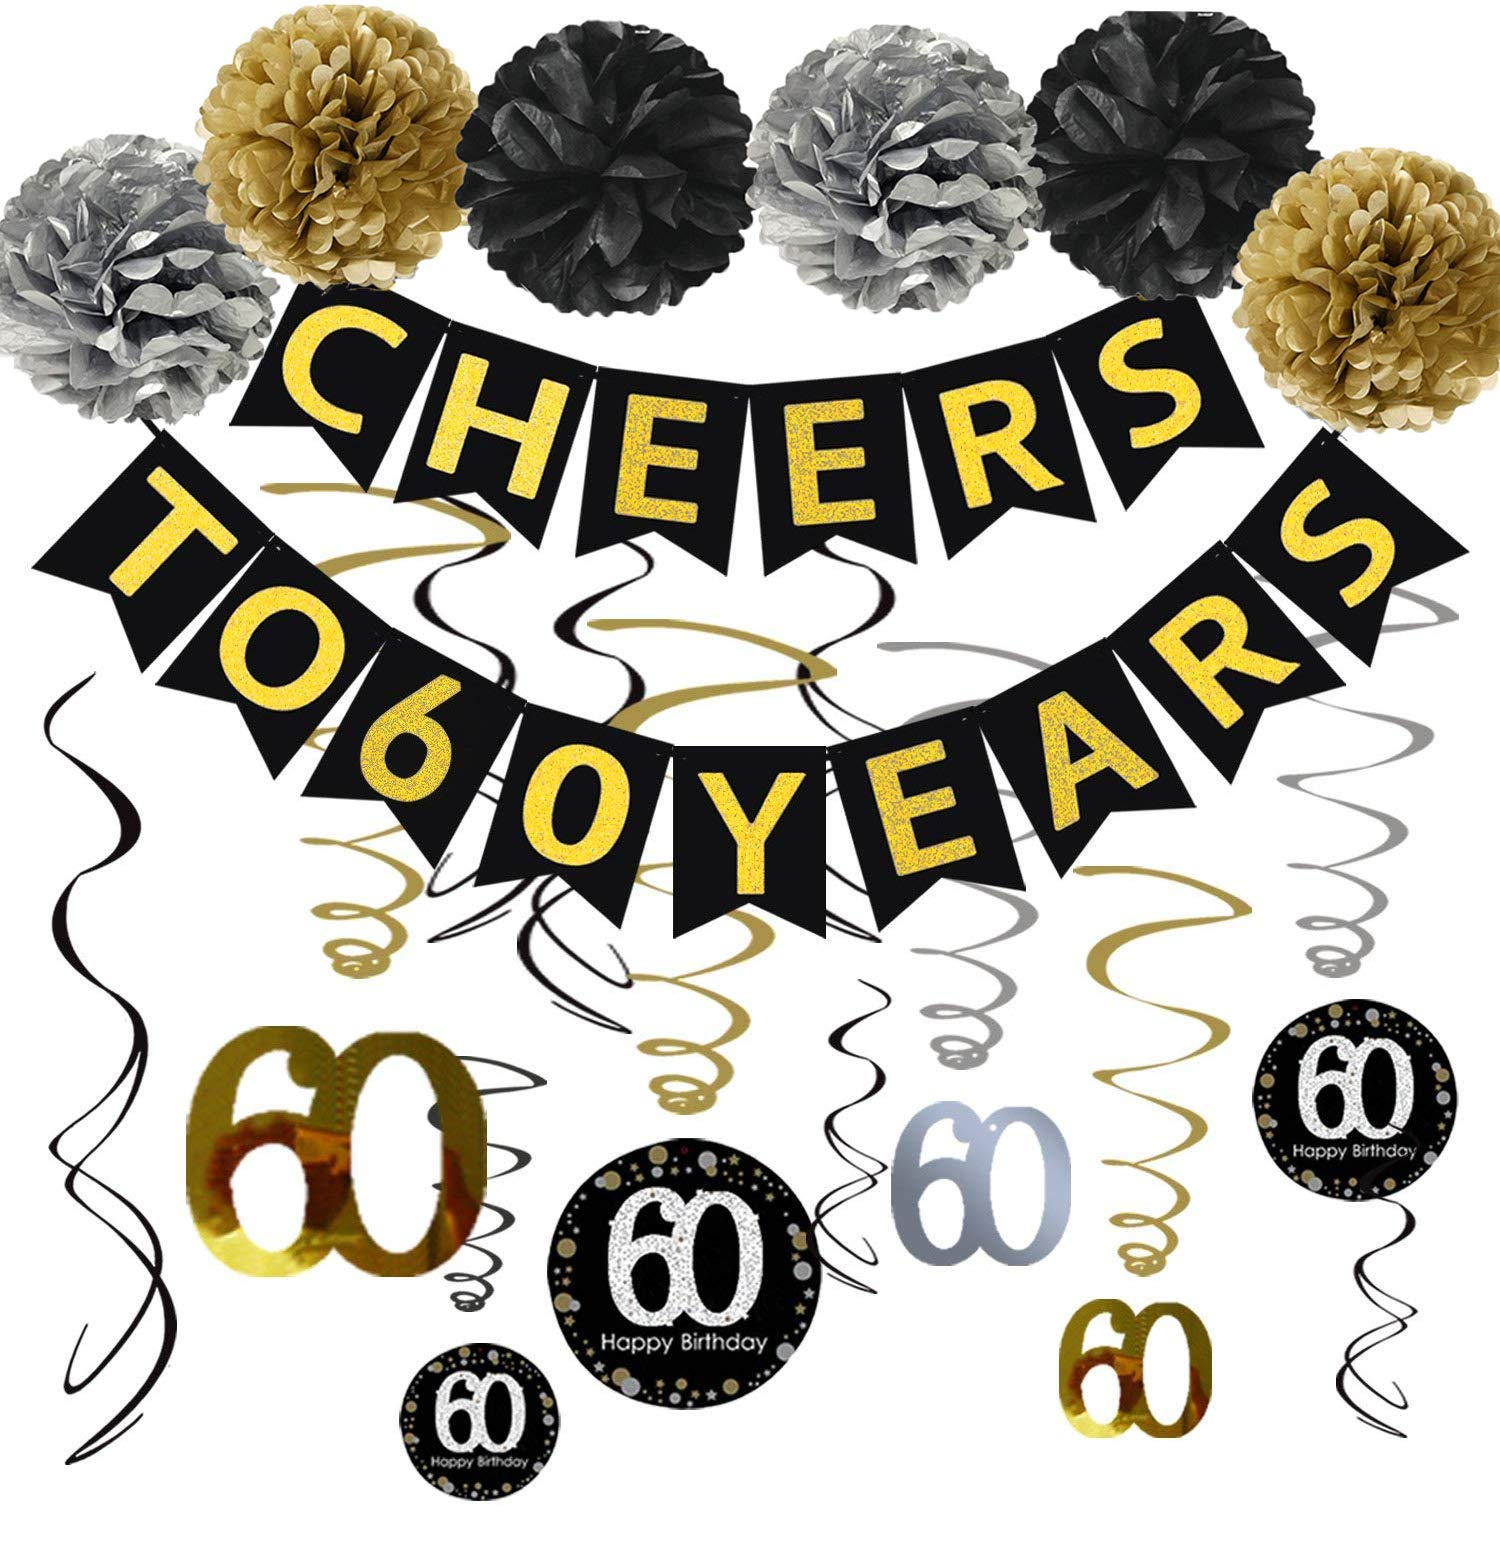 Famoby 60th Birthday Party Decorations KIT - Cheers to 60 Years Banner, Sparkling Celebration 60 Hanging Swirls, Poms, Perfect 60 Years Old Party Supplies 60th Anniversary Decorations